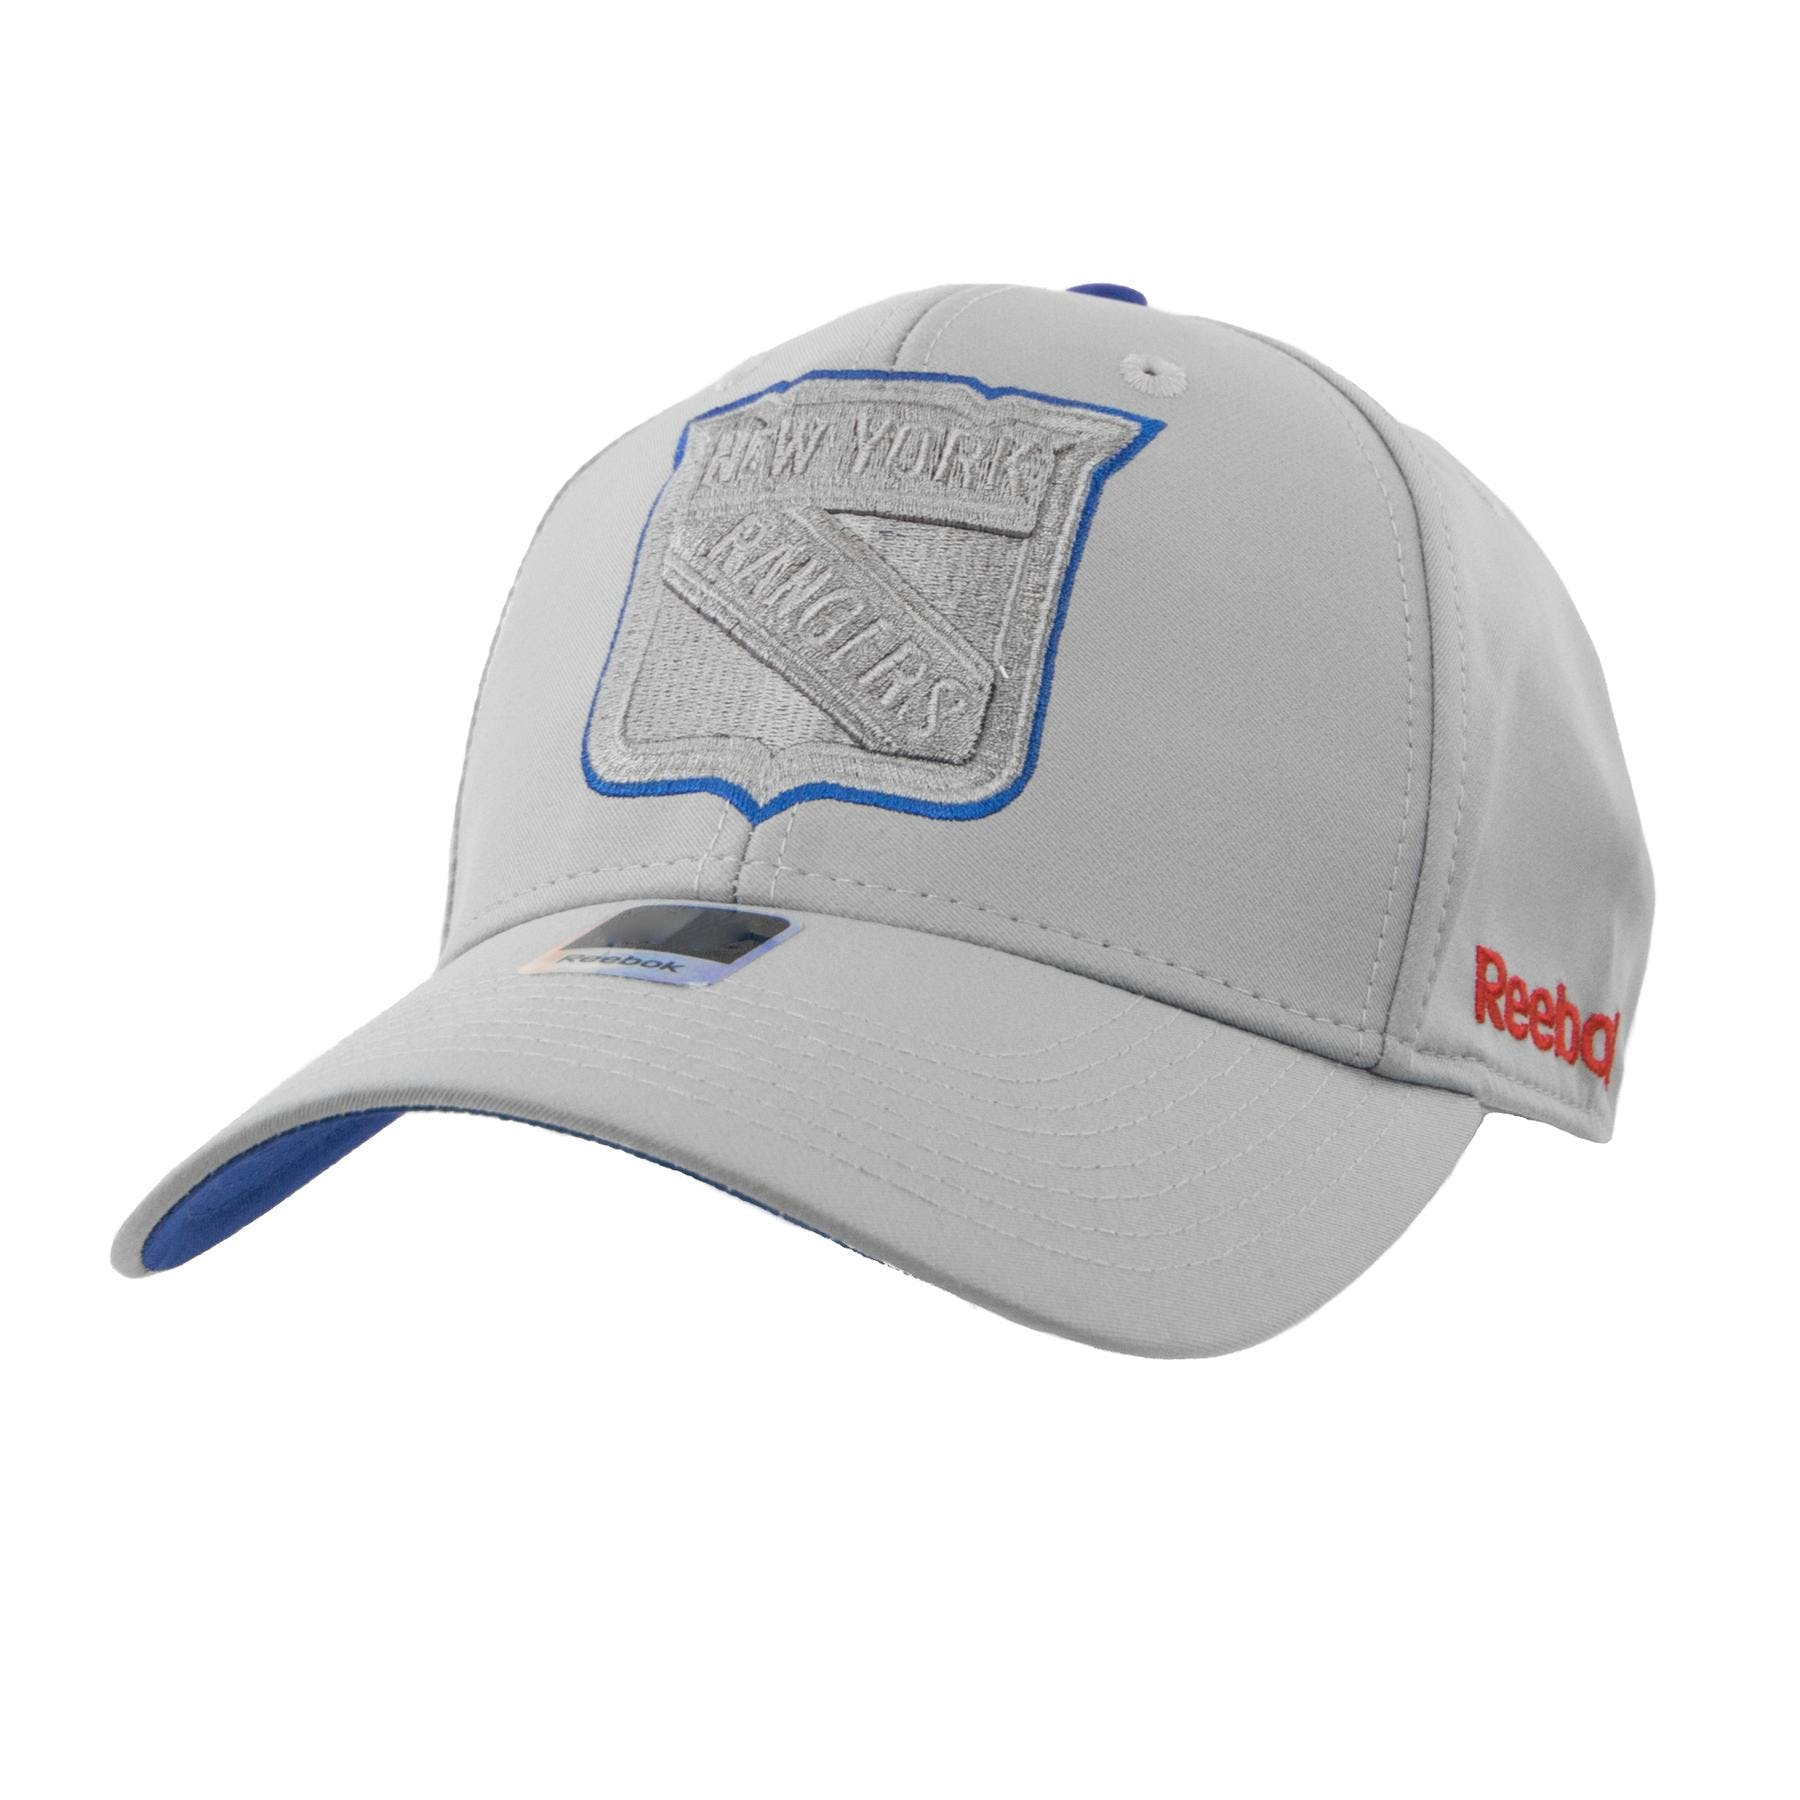 896cd58ad50 New York Rangers Reebok Gray Face Off Structured Flex Fit Hat